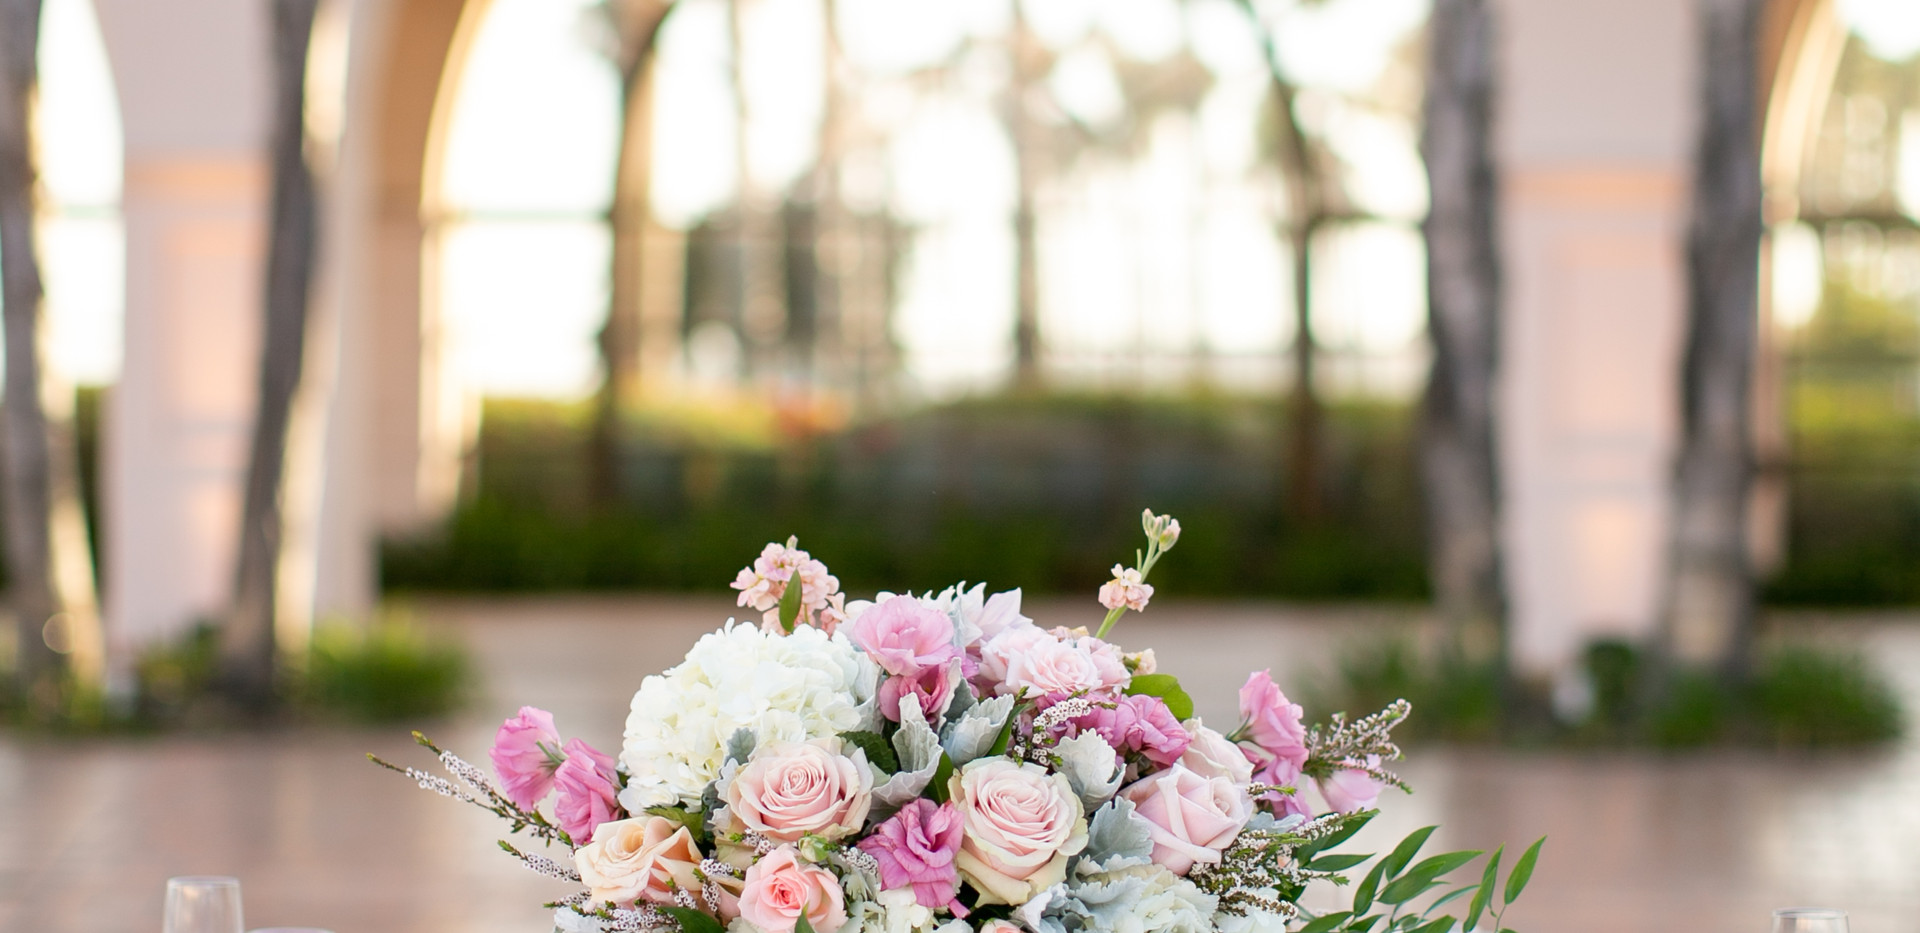 Pink and White Wedding Reception Table Setting